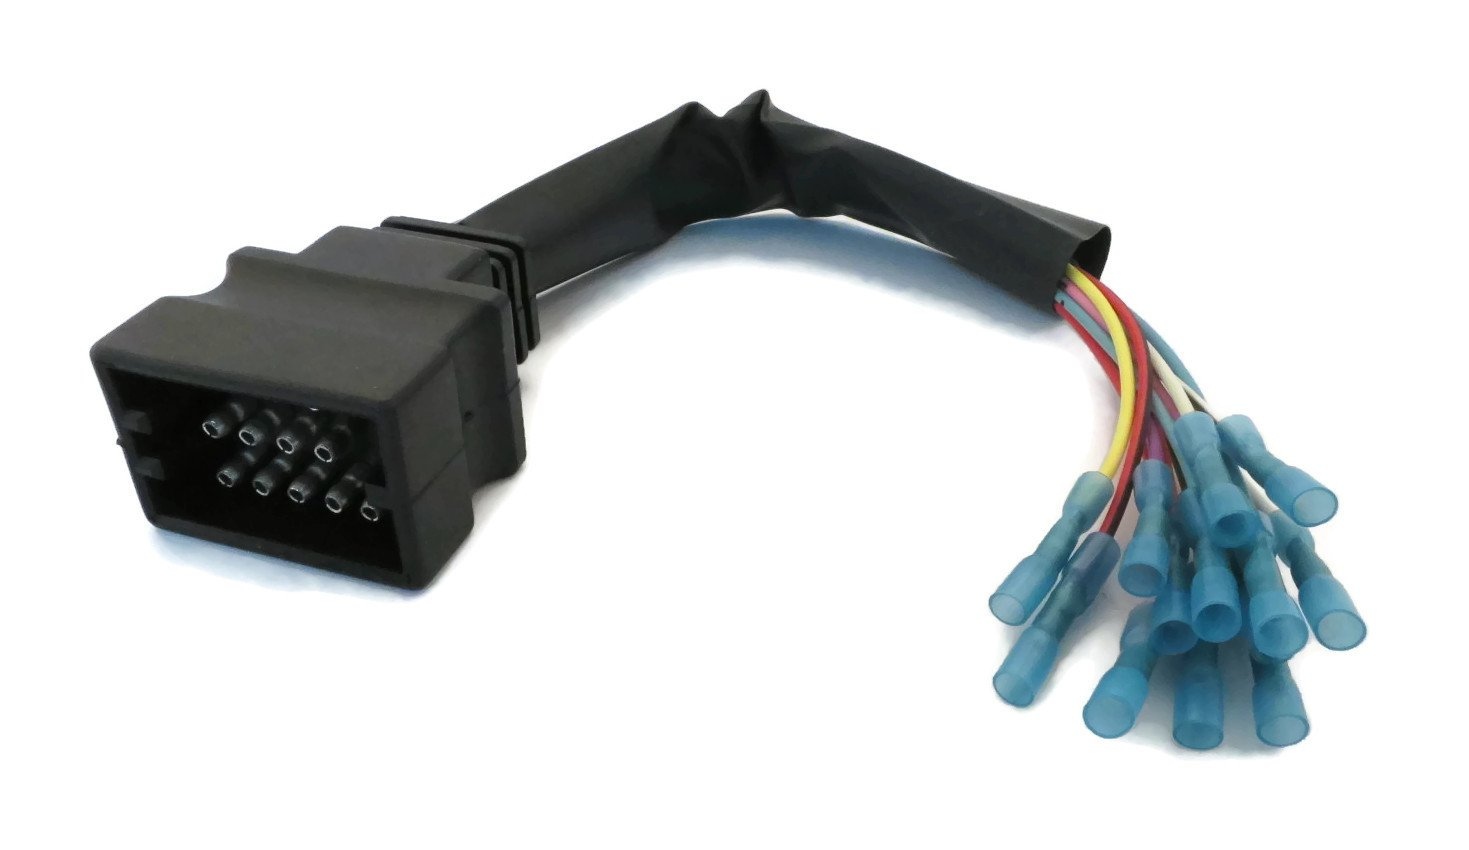 61IwZON%2BxQL._SL1469_ amazon com snow plow wiring harness repair kit (plow side how to repair a wiring harness at pacquiaovsvargaslive.co